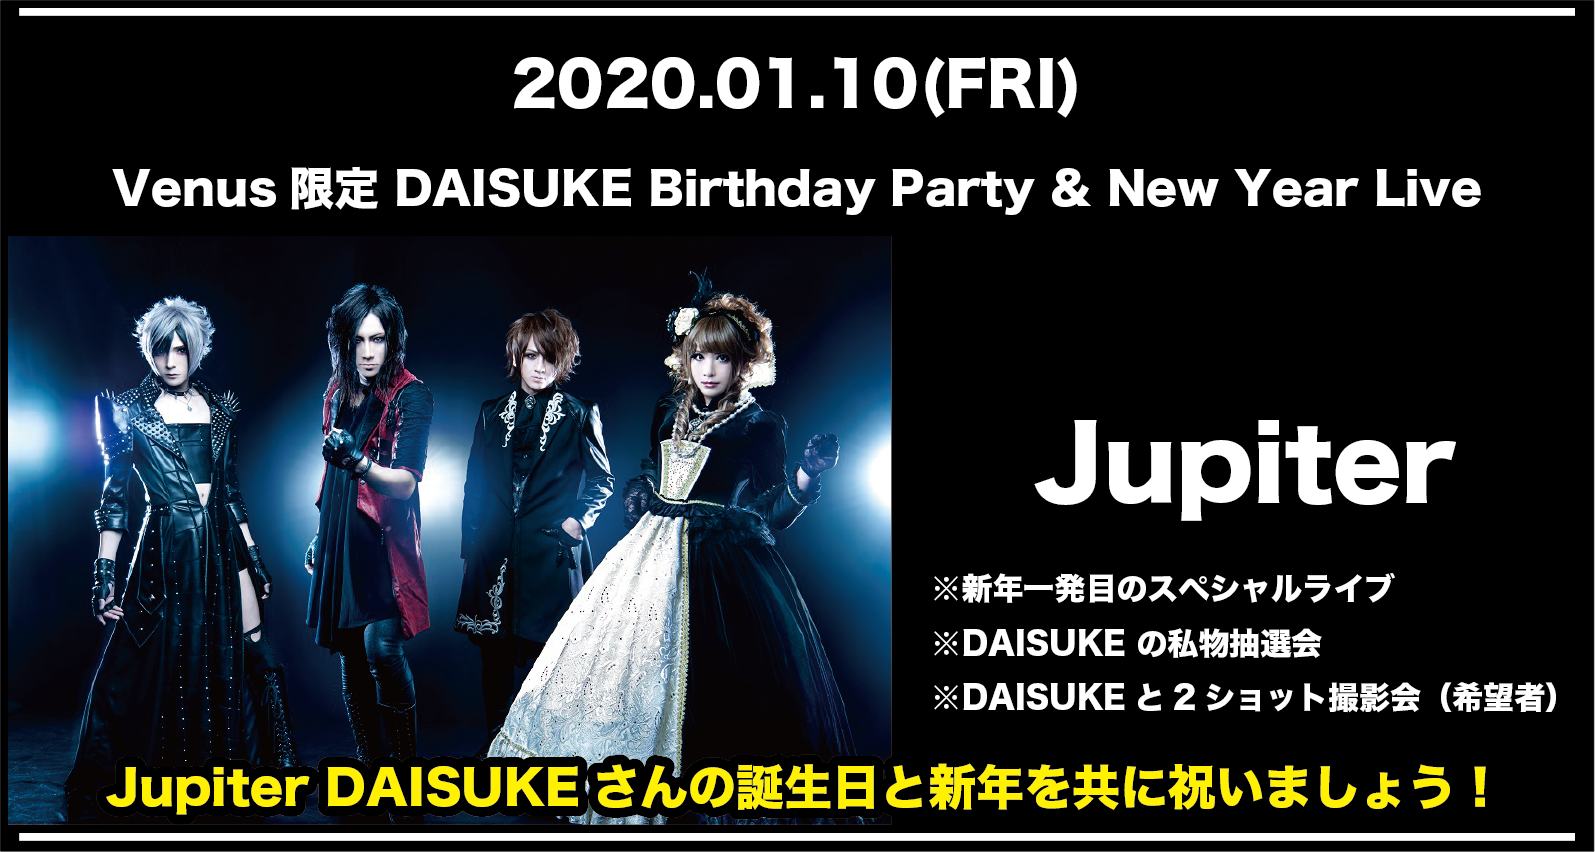 Venus限定 DAISUKE Birthday Party & New Year Live